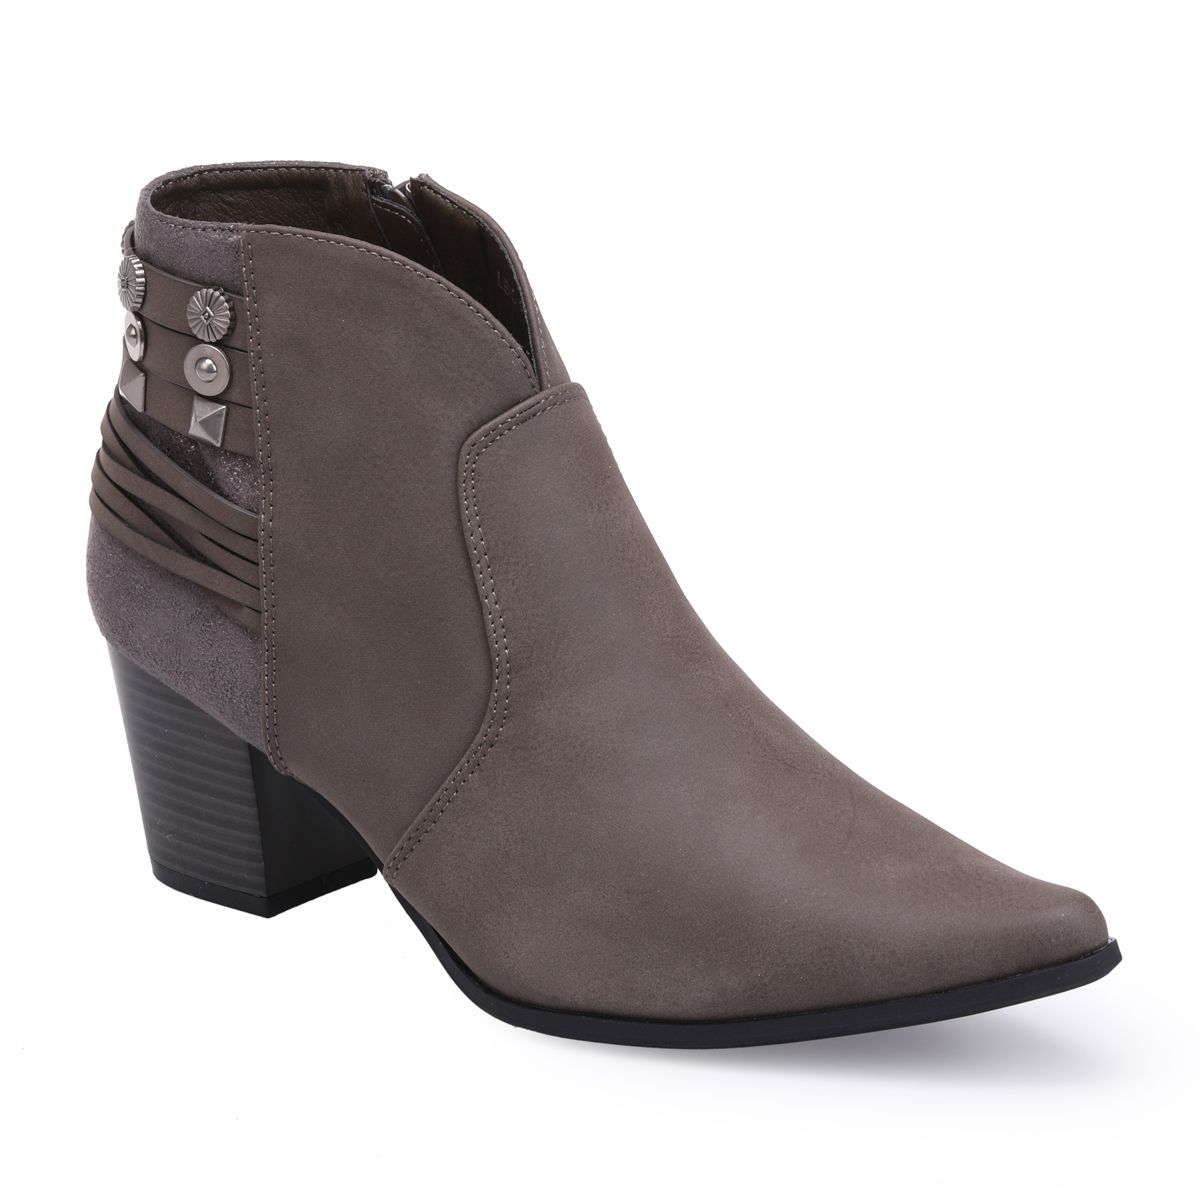 La Modeuse Bottines taupe à paillettes et multibrides à clous Taupe - Chaussures Bottine Femme